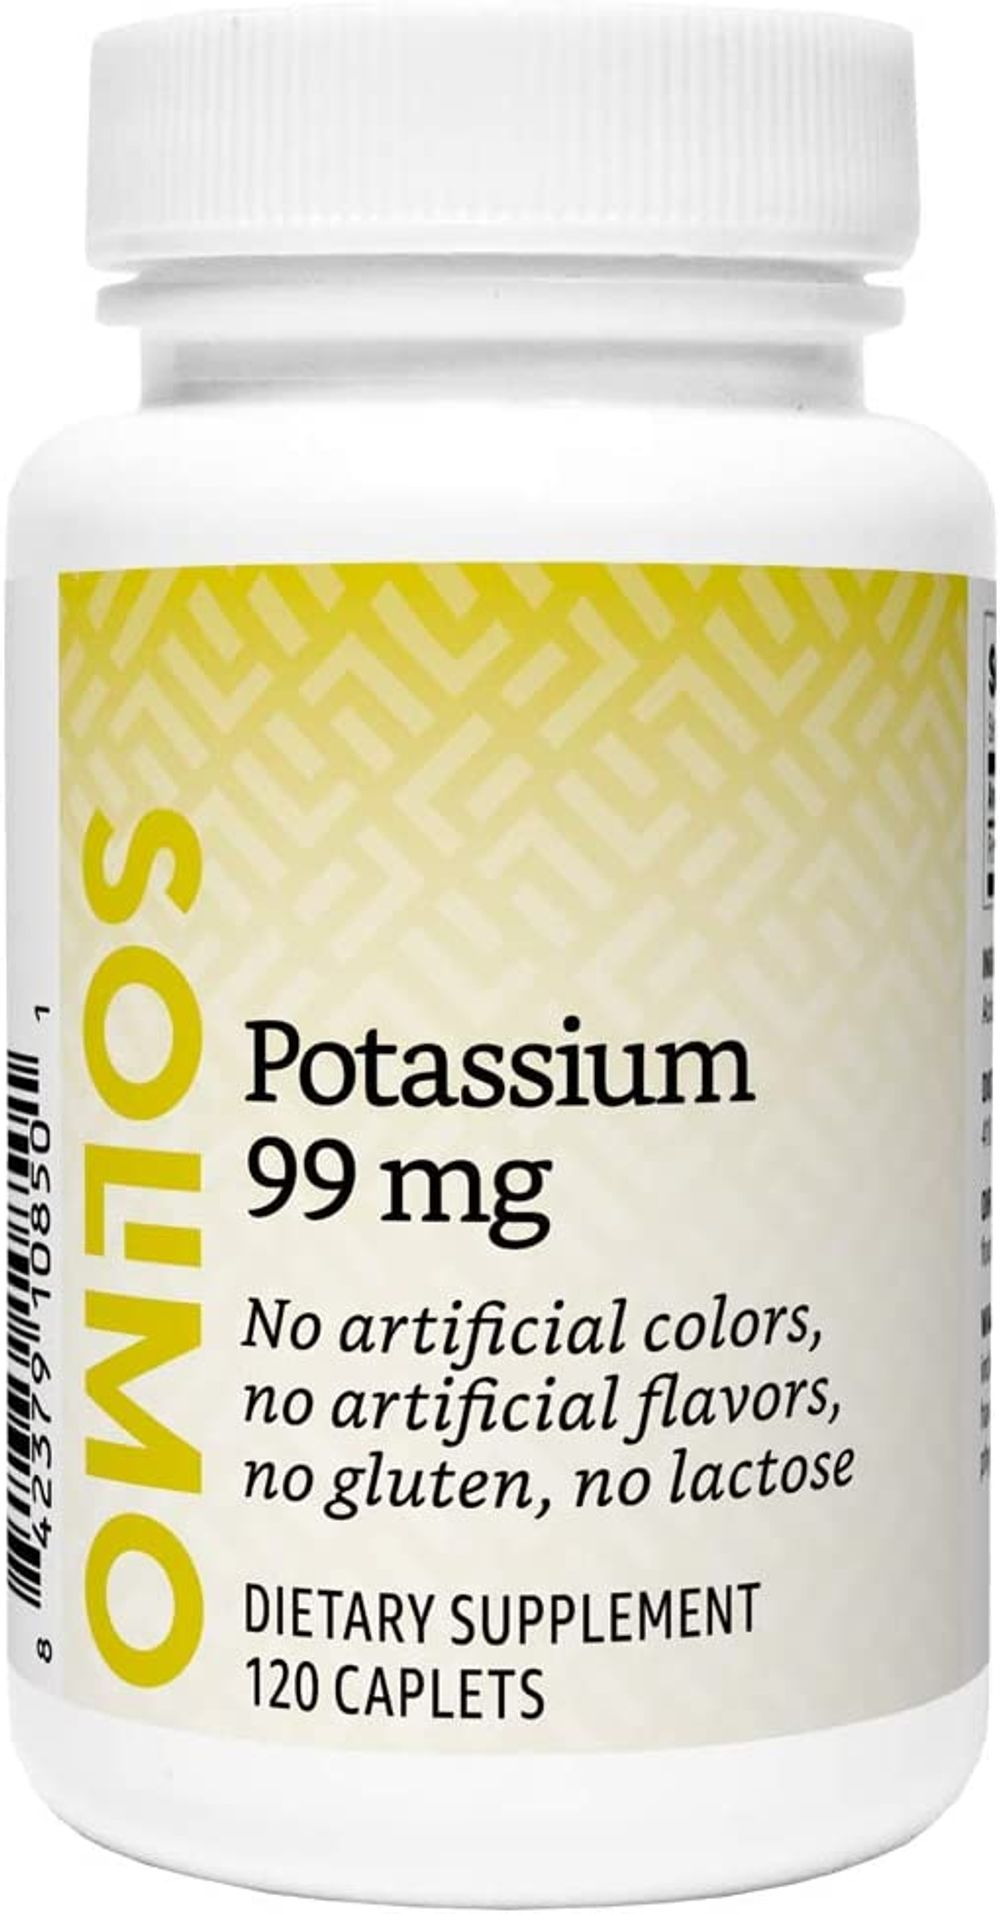 Brand - Solimo Potassium 99 mg, 120 Caplets, Four Month Supply (Packaging May Vary) & Solimo Vitamin D3 125 mcg (5000 IU), 150 Softgels, Five Month Supply (Packaging May Vary)